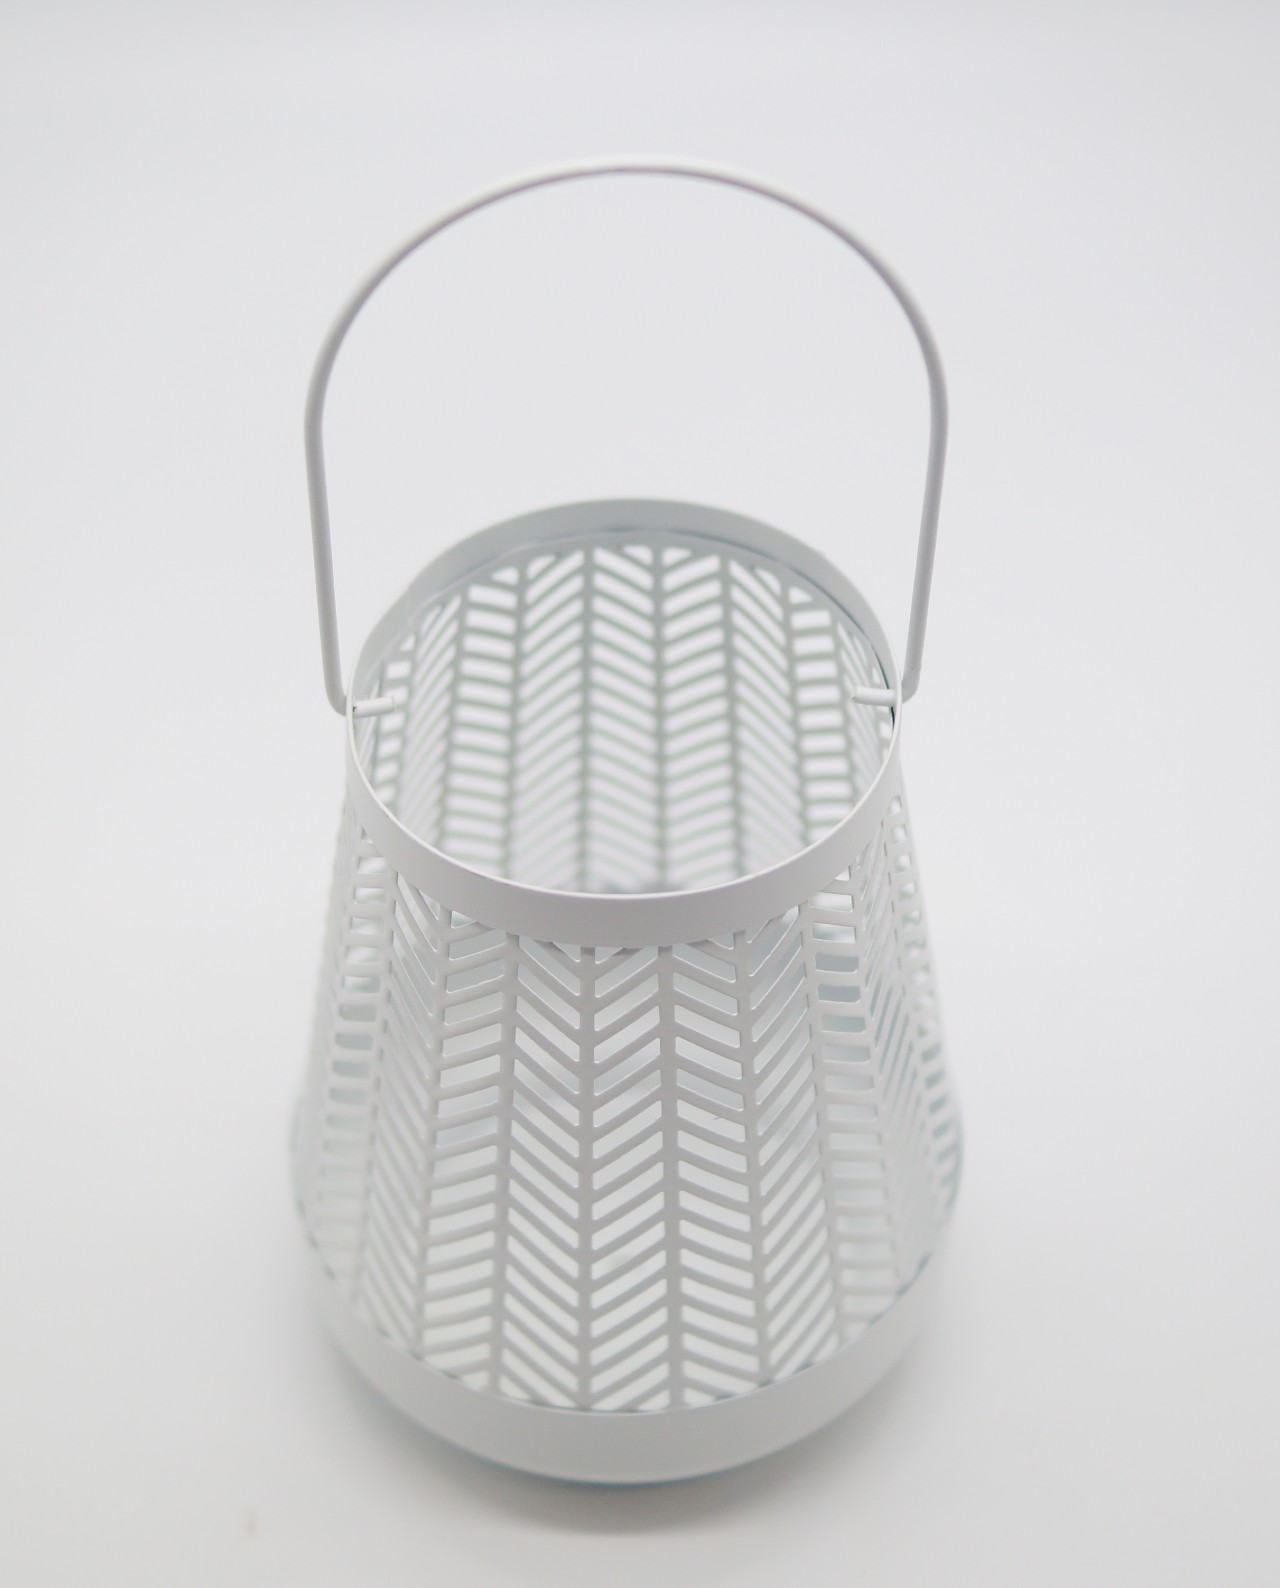 Lantern made of metal in bright white color